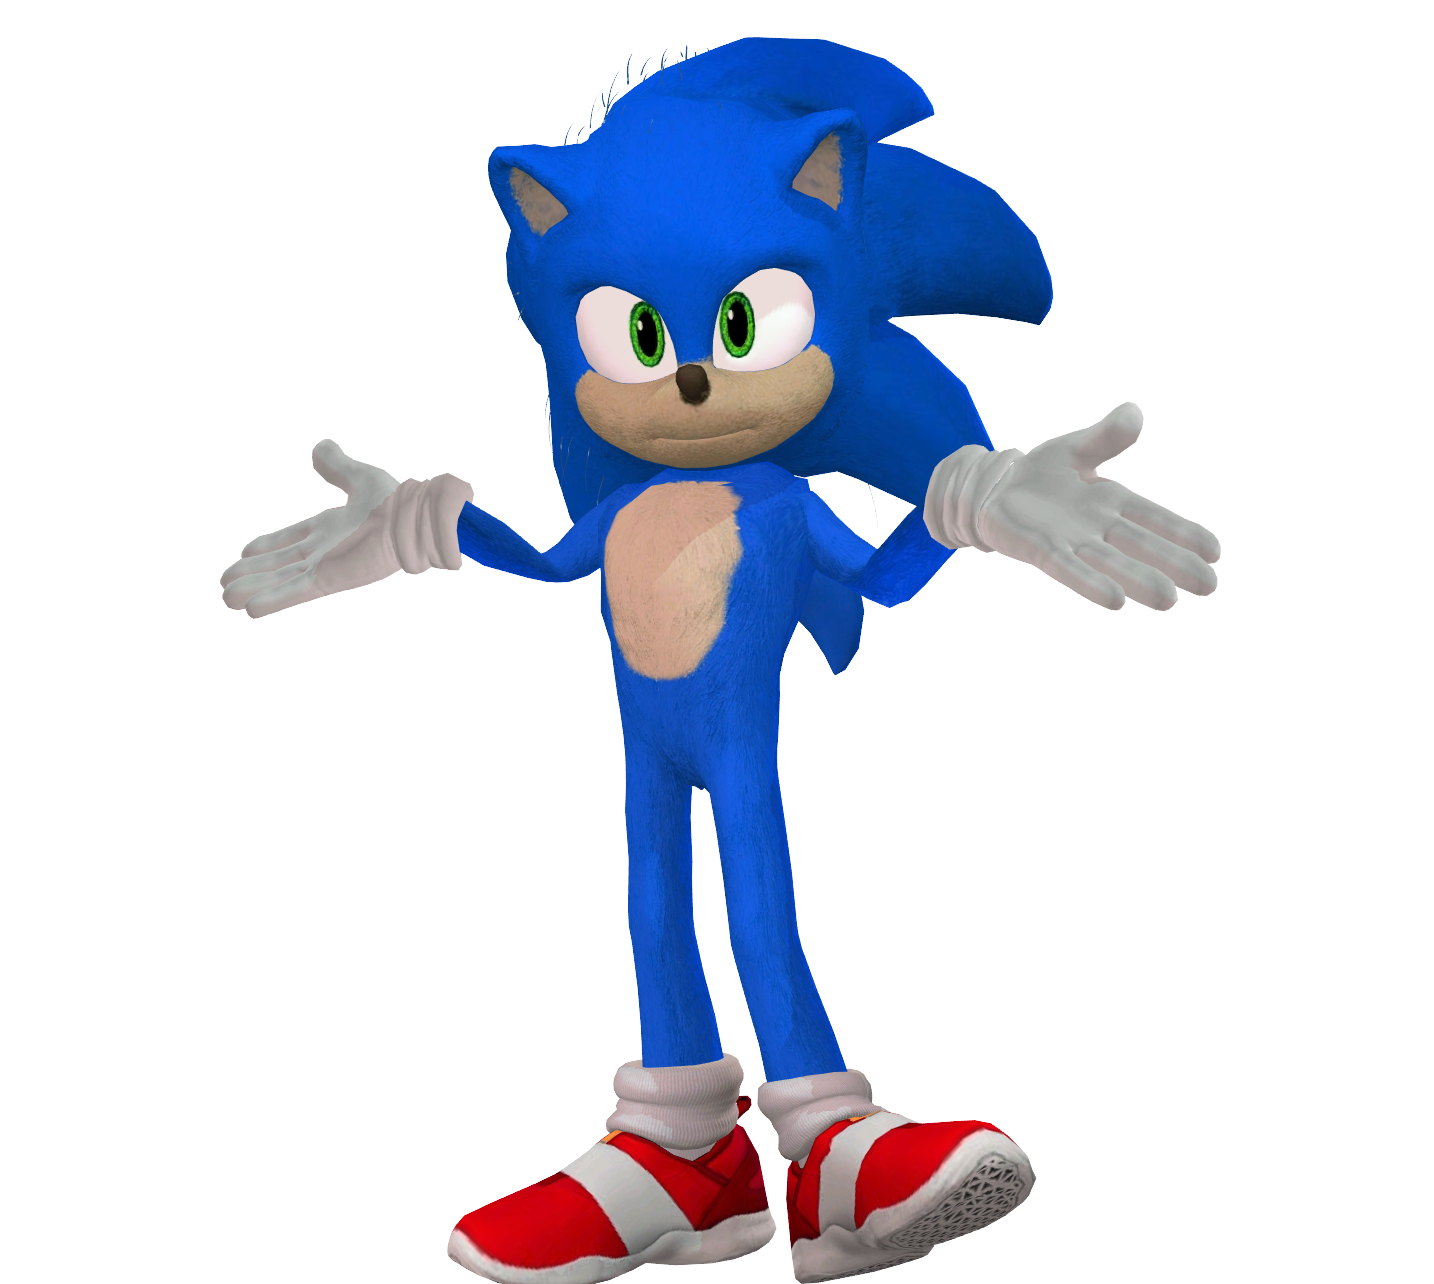 Mmd Movie Sonic 2020 Download By Sonicgirlmmd On Deviantart